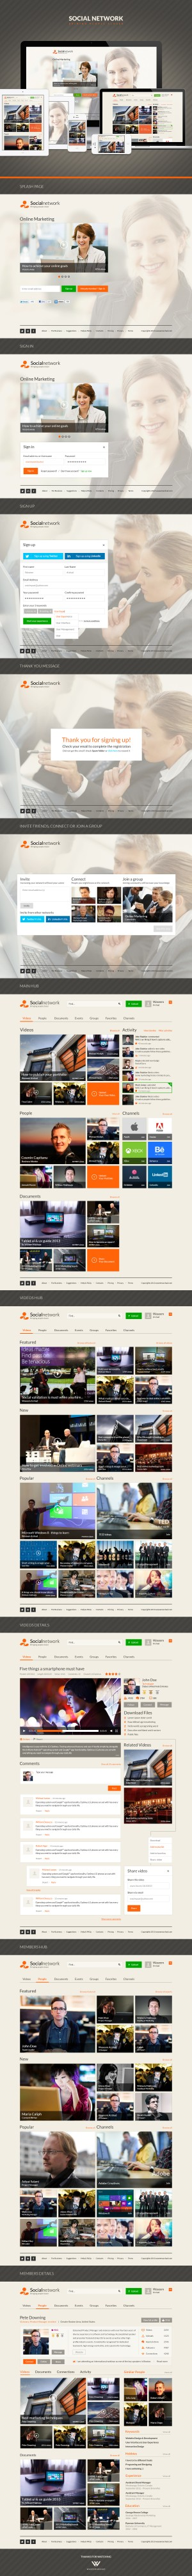 Metro Style – Complete Social Network Website